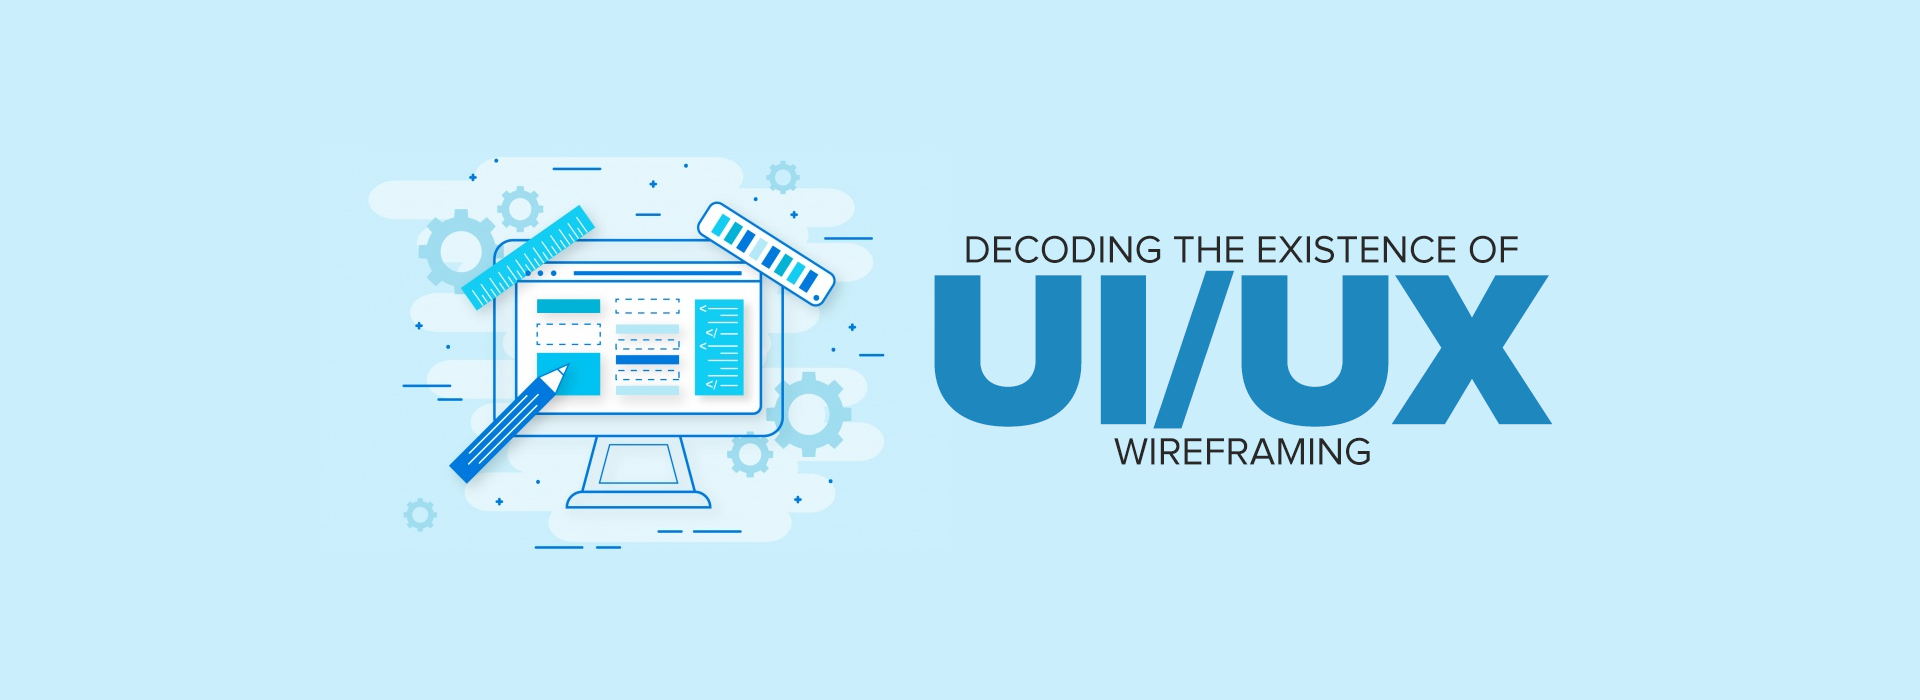 Decoding-the-existence-of-UI_UX-wireframing